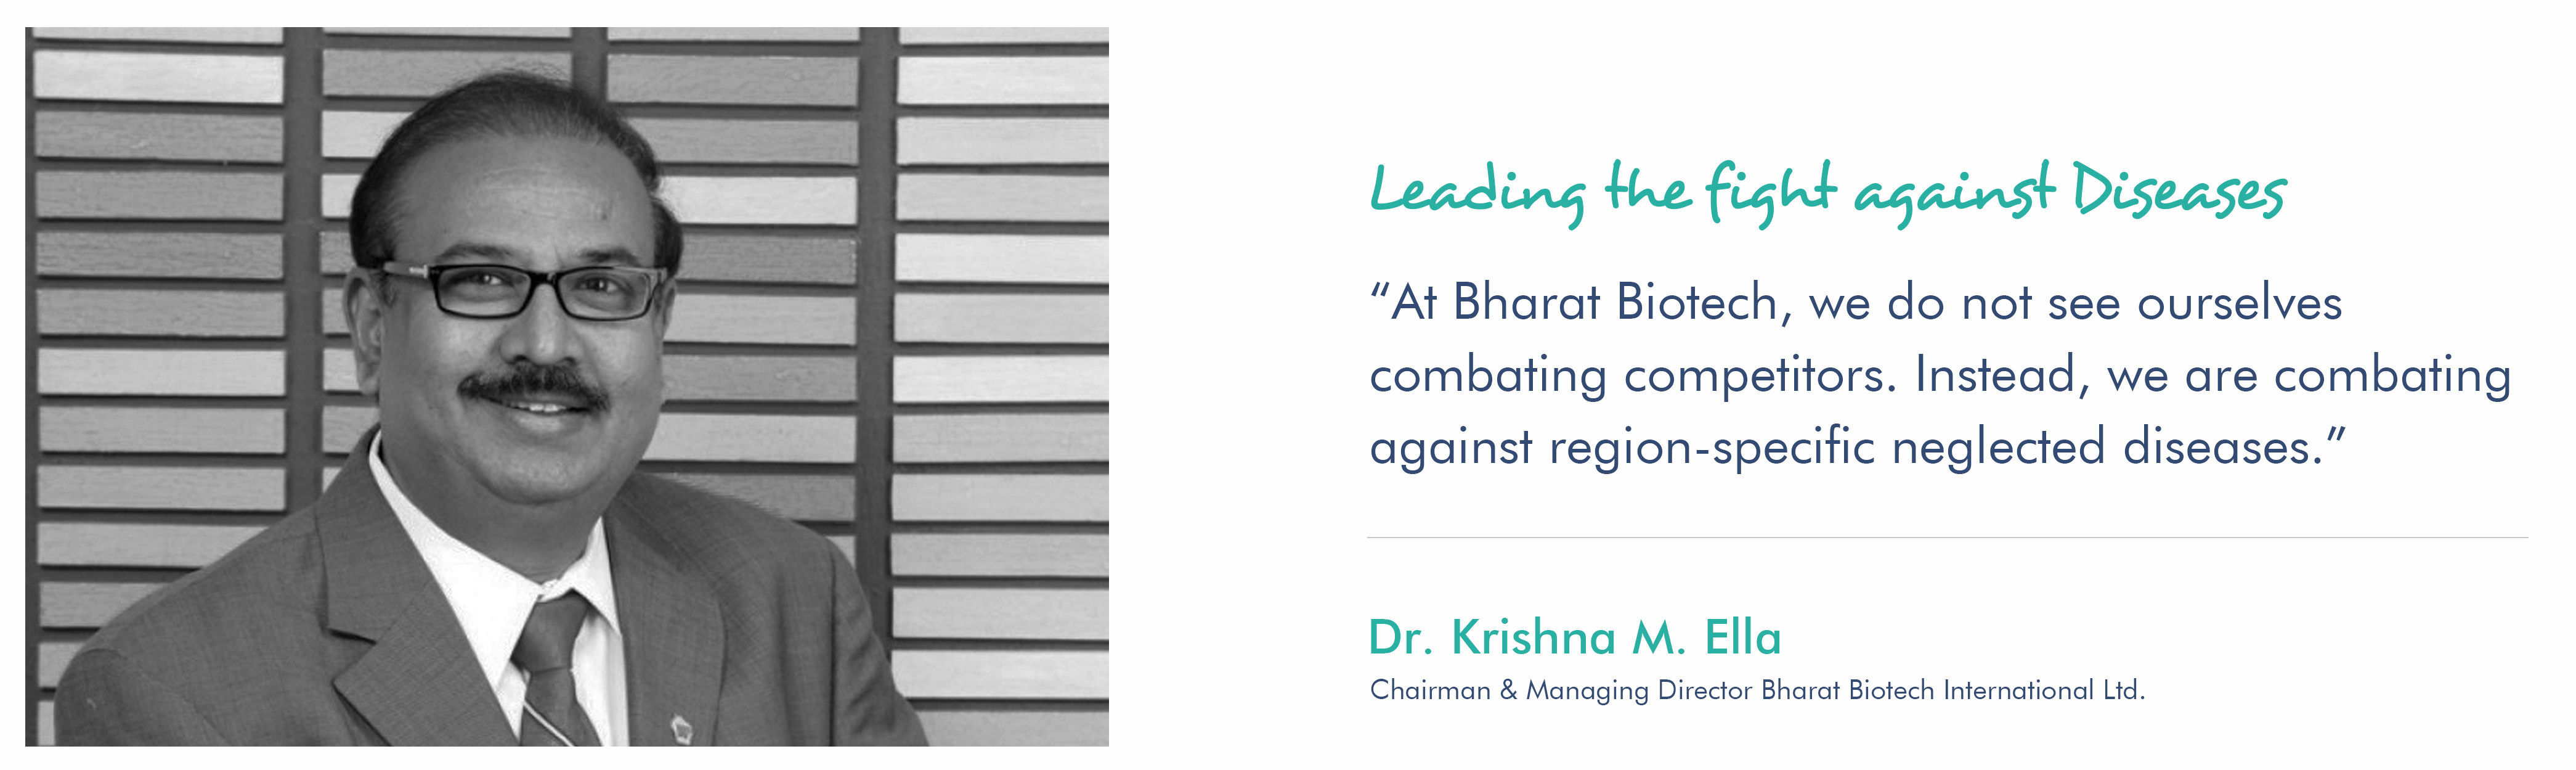 Bharat Biotech-Vaccines & Bio-Therapeutics Manufacturer in India